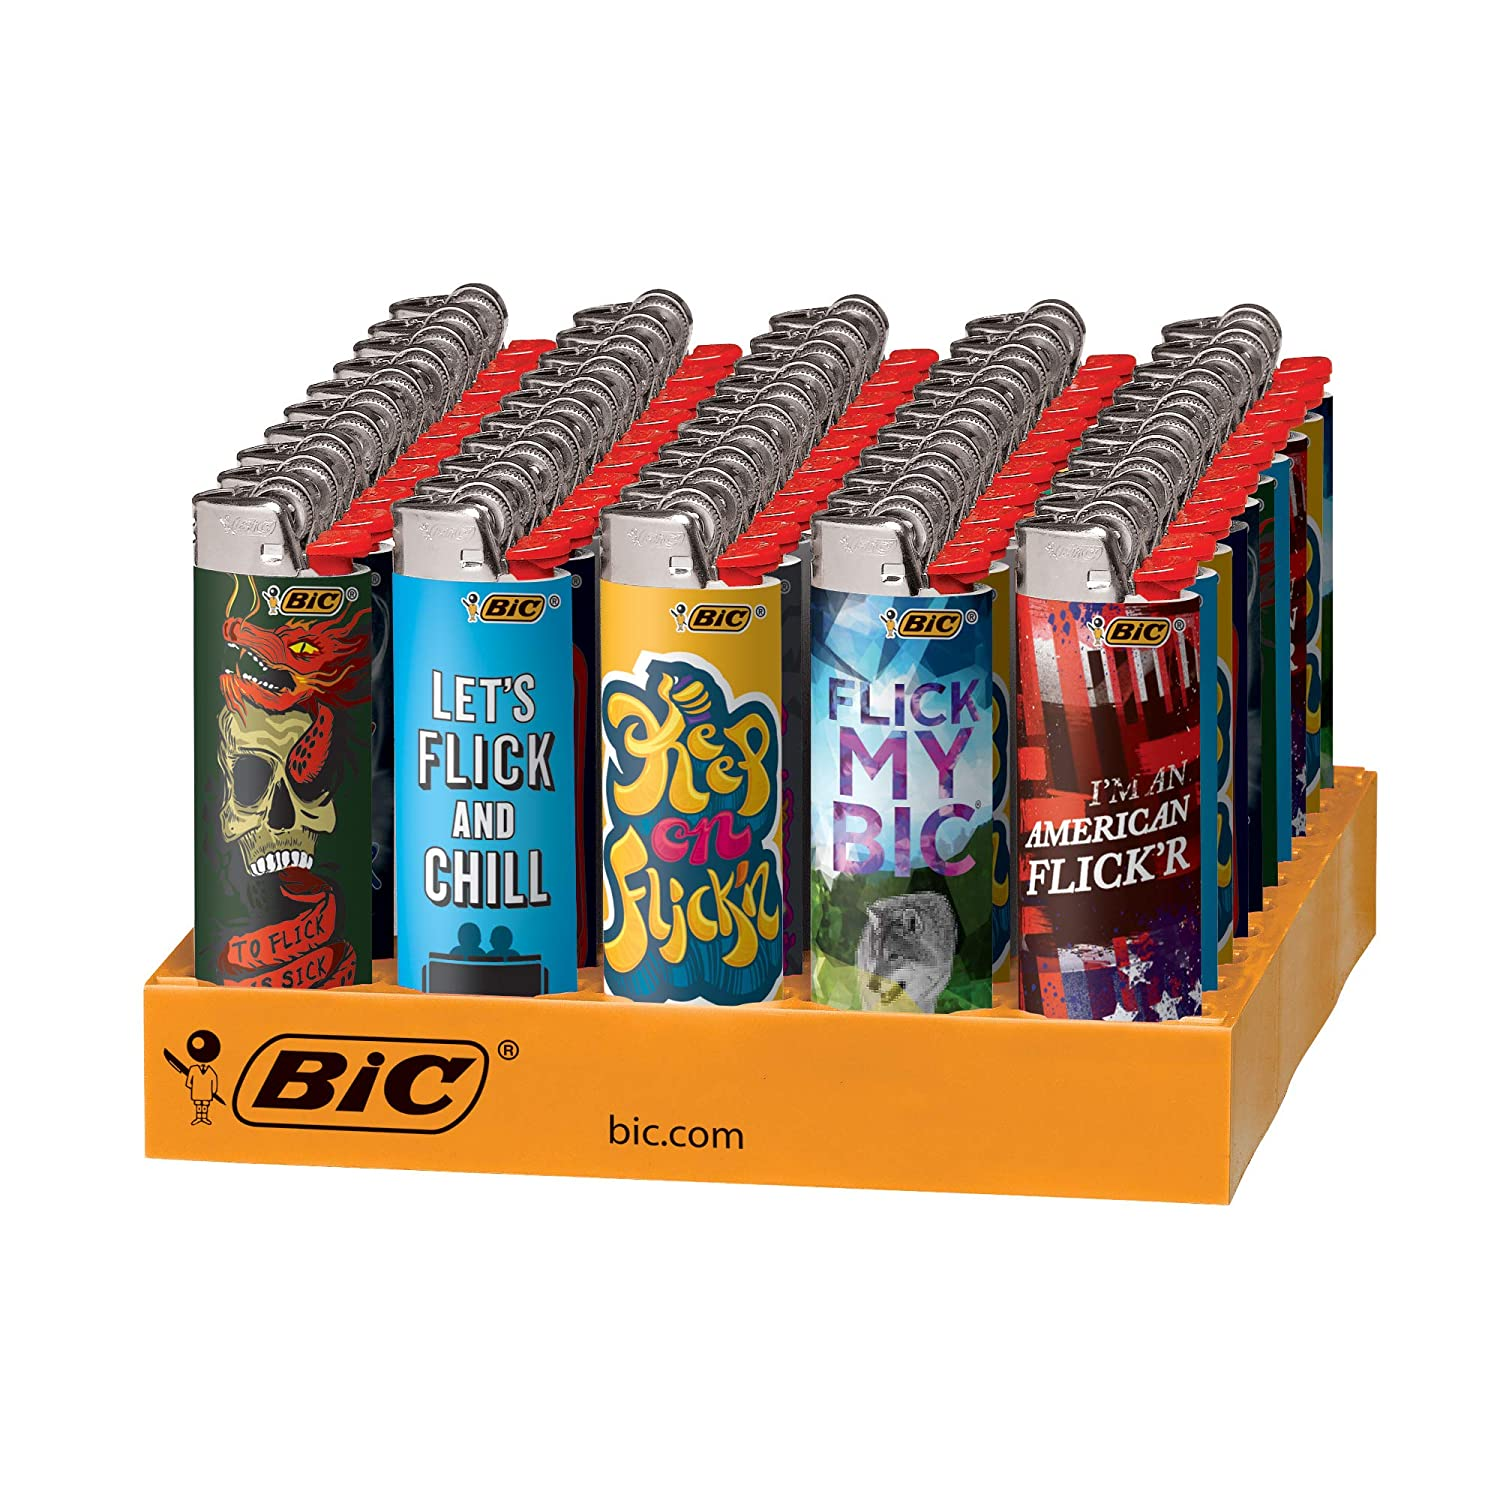 BIC Special Edition Flick My BIC Series Lighters 50-Count Tray